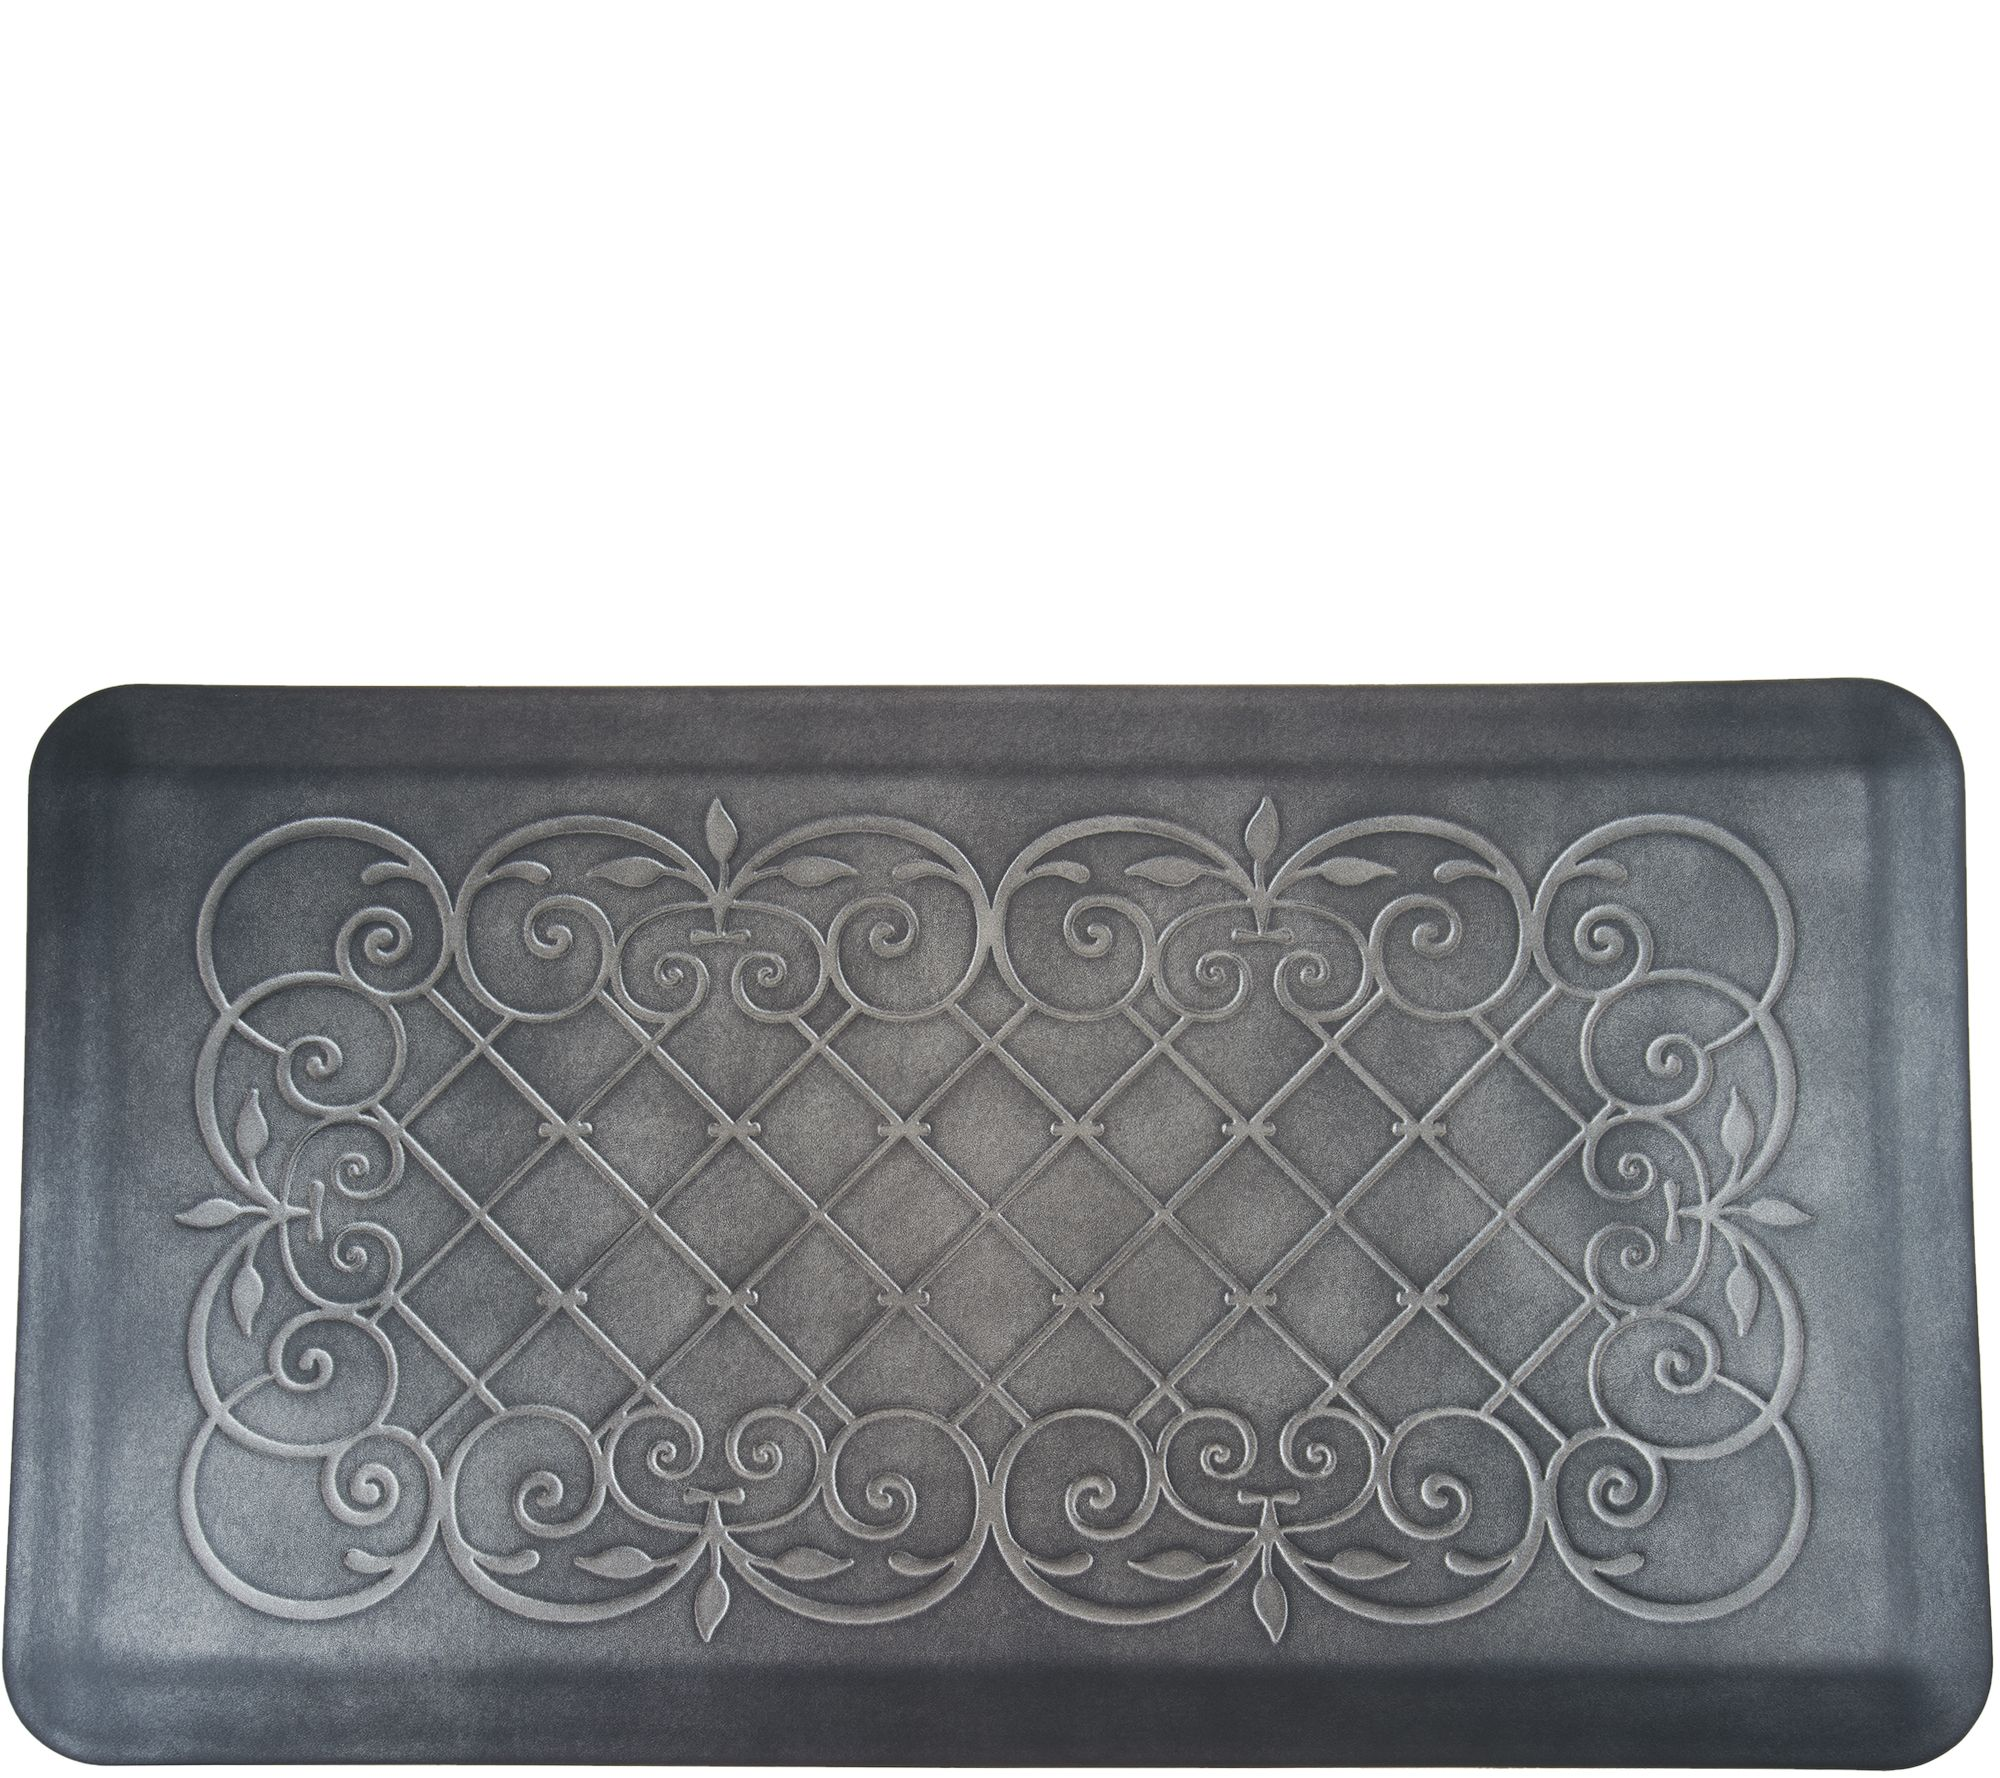 Half Moon Kitchen Rugs Rugs Doormats Rug Runners Area Rugs For The Home Qvccom